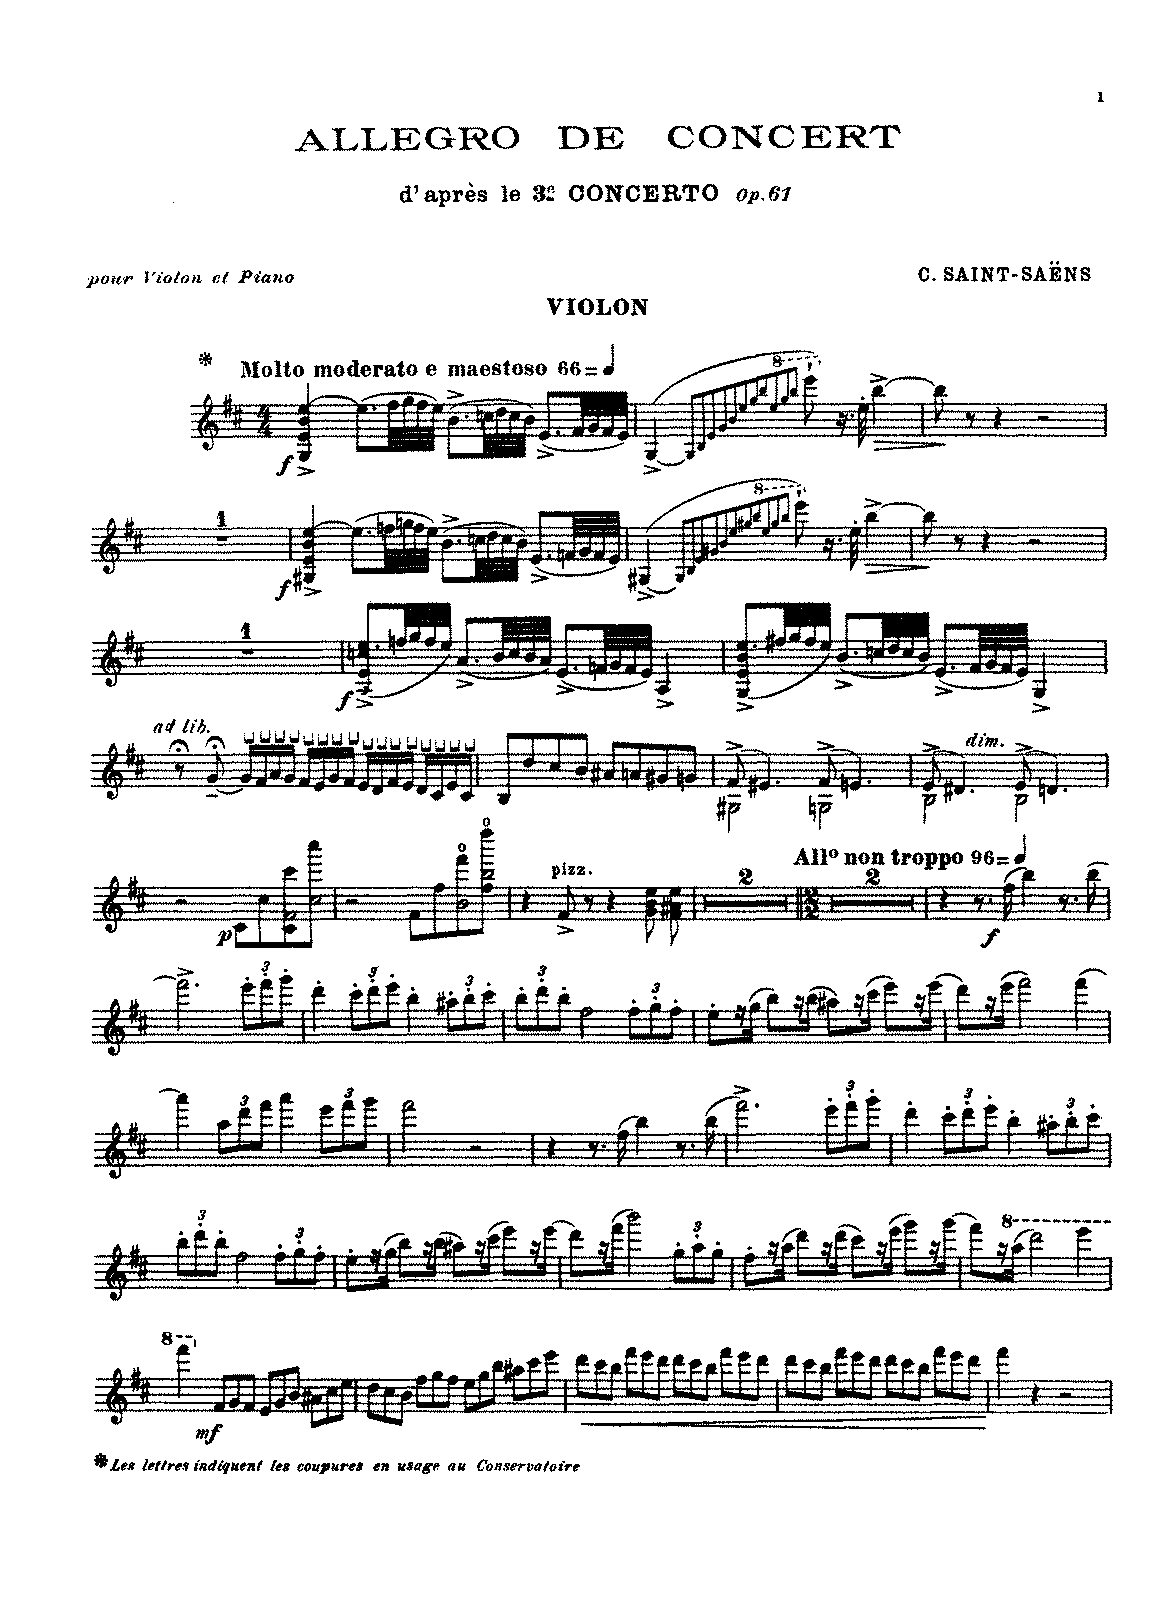 PMLP68990-Saint-Saëns - Allegro de Concert (violin and piano).pdf